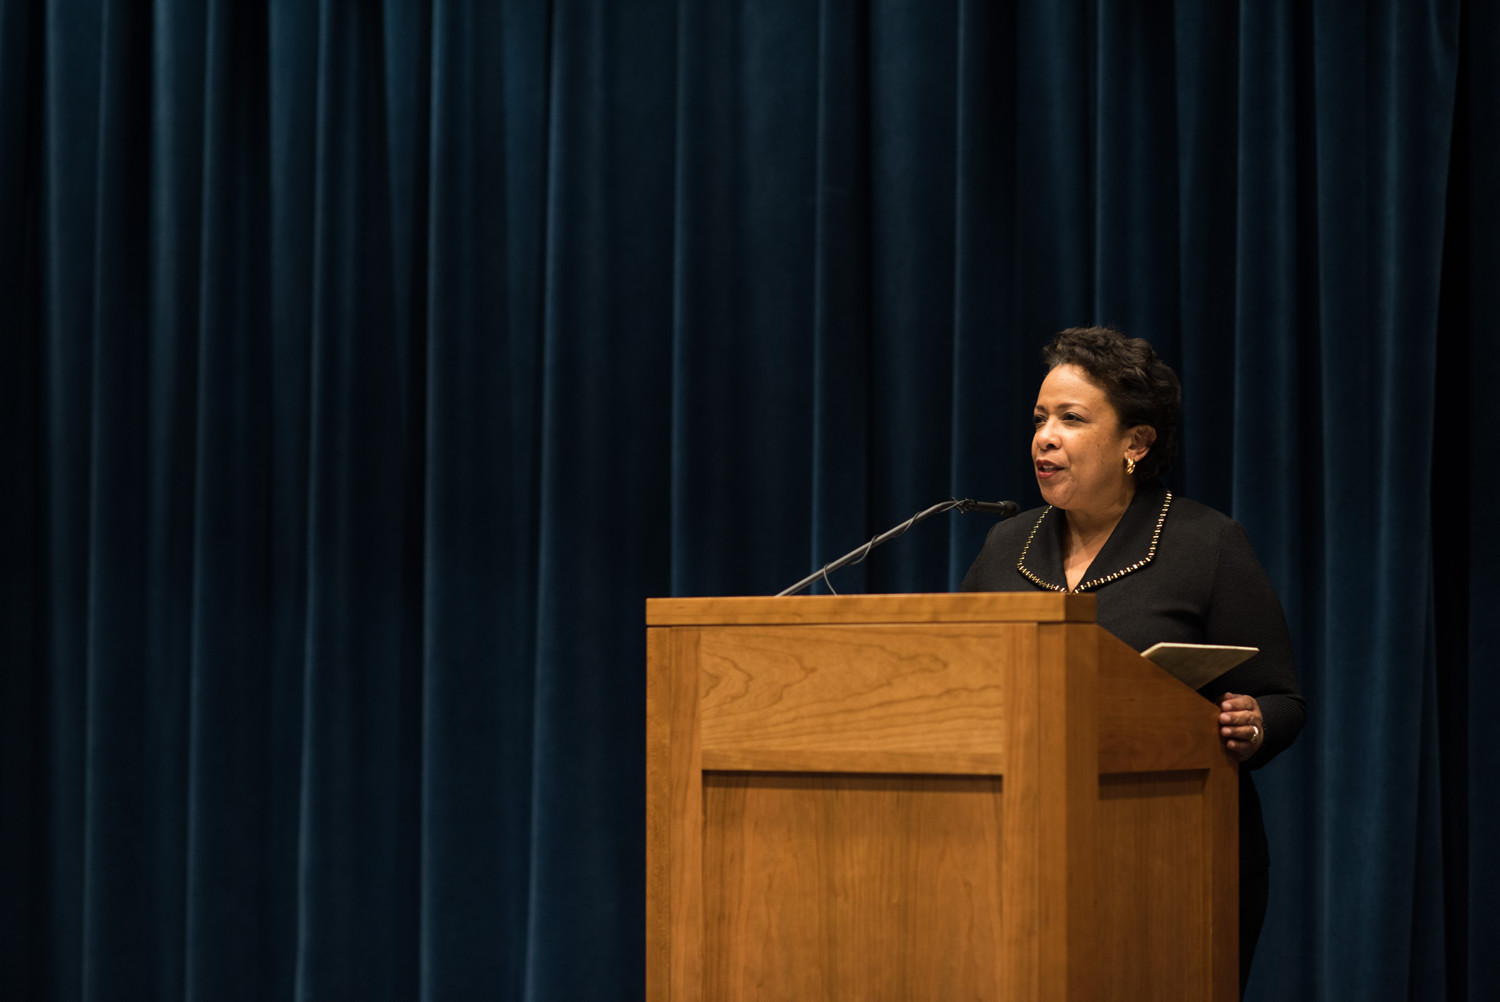 Former Attorney General Loretta Lynch, this year's recipient of the Thomas Jefferson Foundation Medal in Law, spoke Thursday at the Law School. (Photo by Jesus Pino)